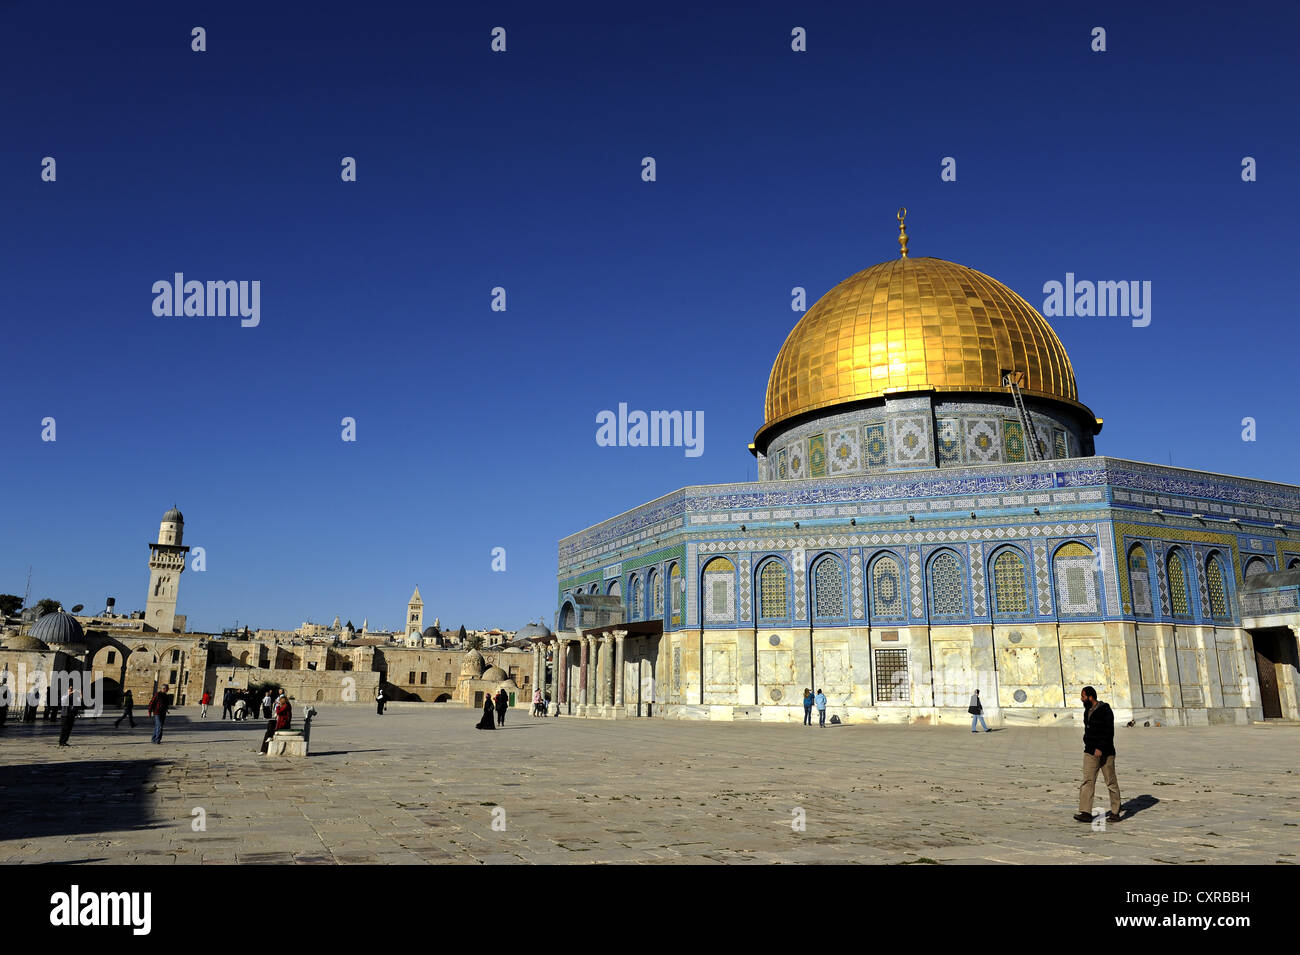 Minarett of the Al-Aqsa Mosque and the Dome of the Rock, Temple Mount, Old City, Jerusalem, Israel, Middle East, - Stock Image